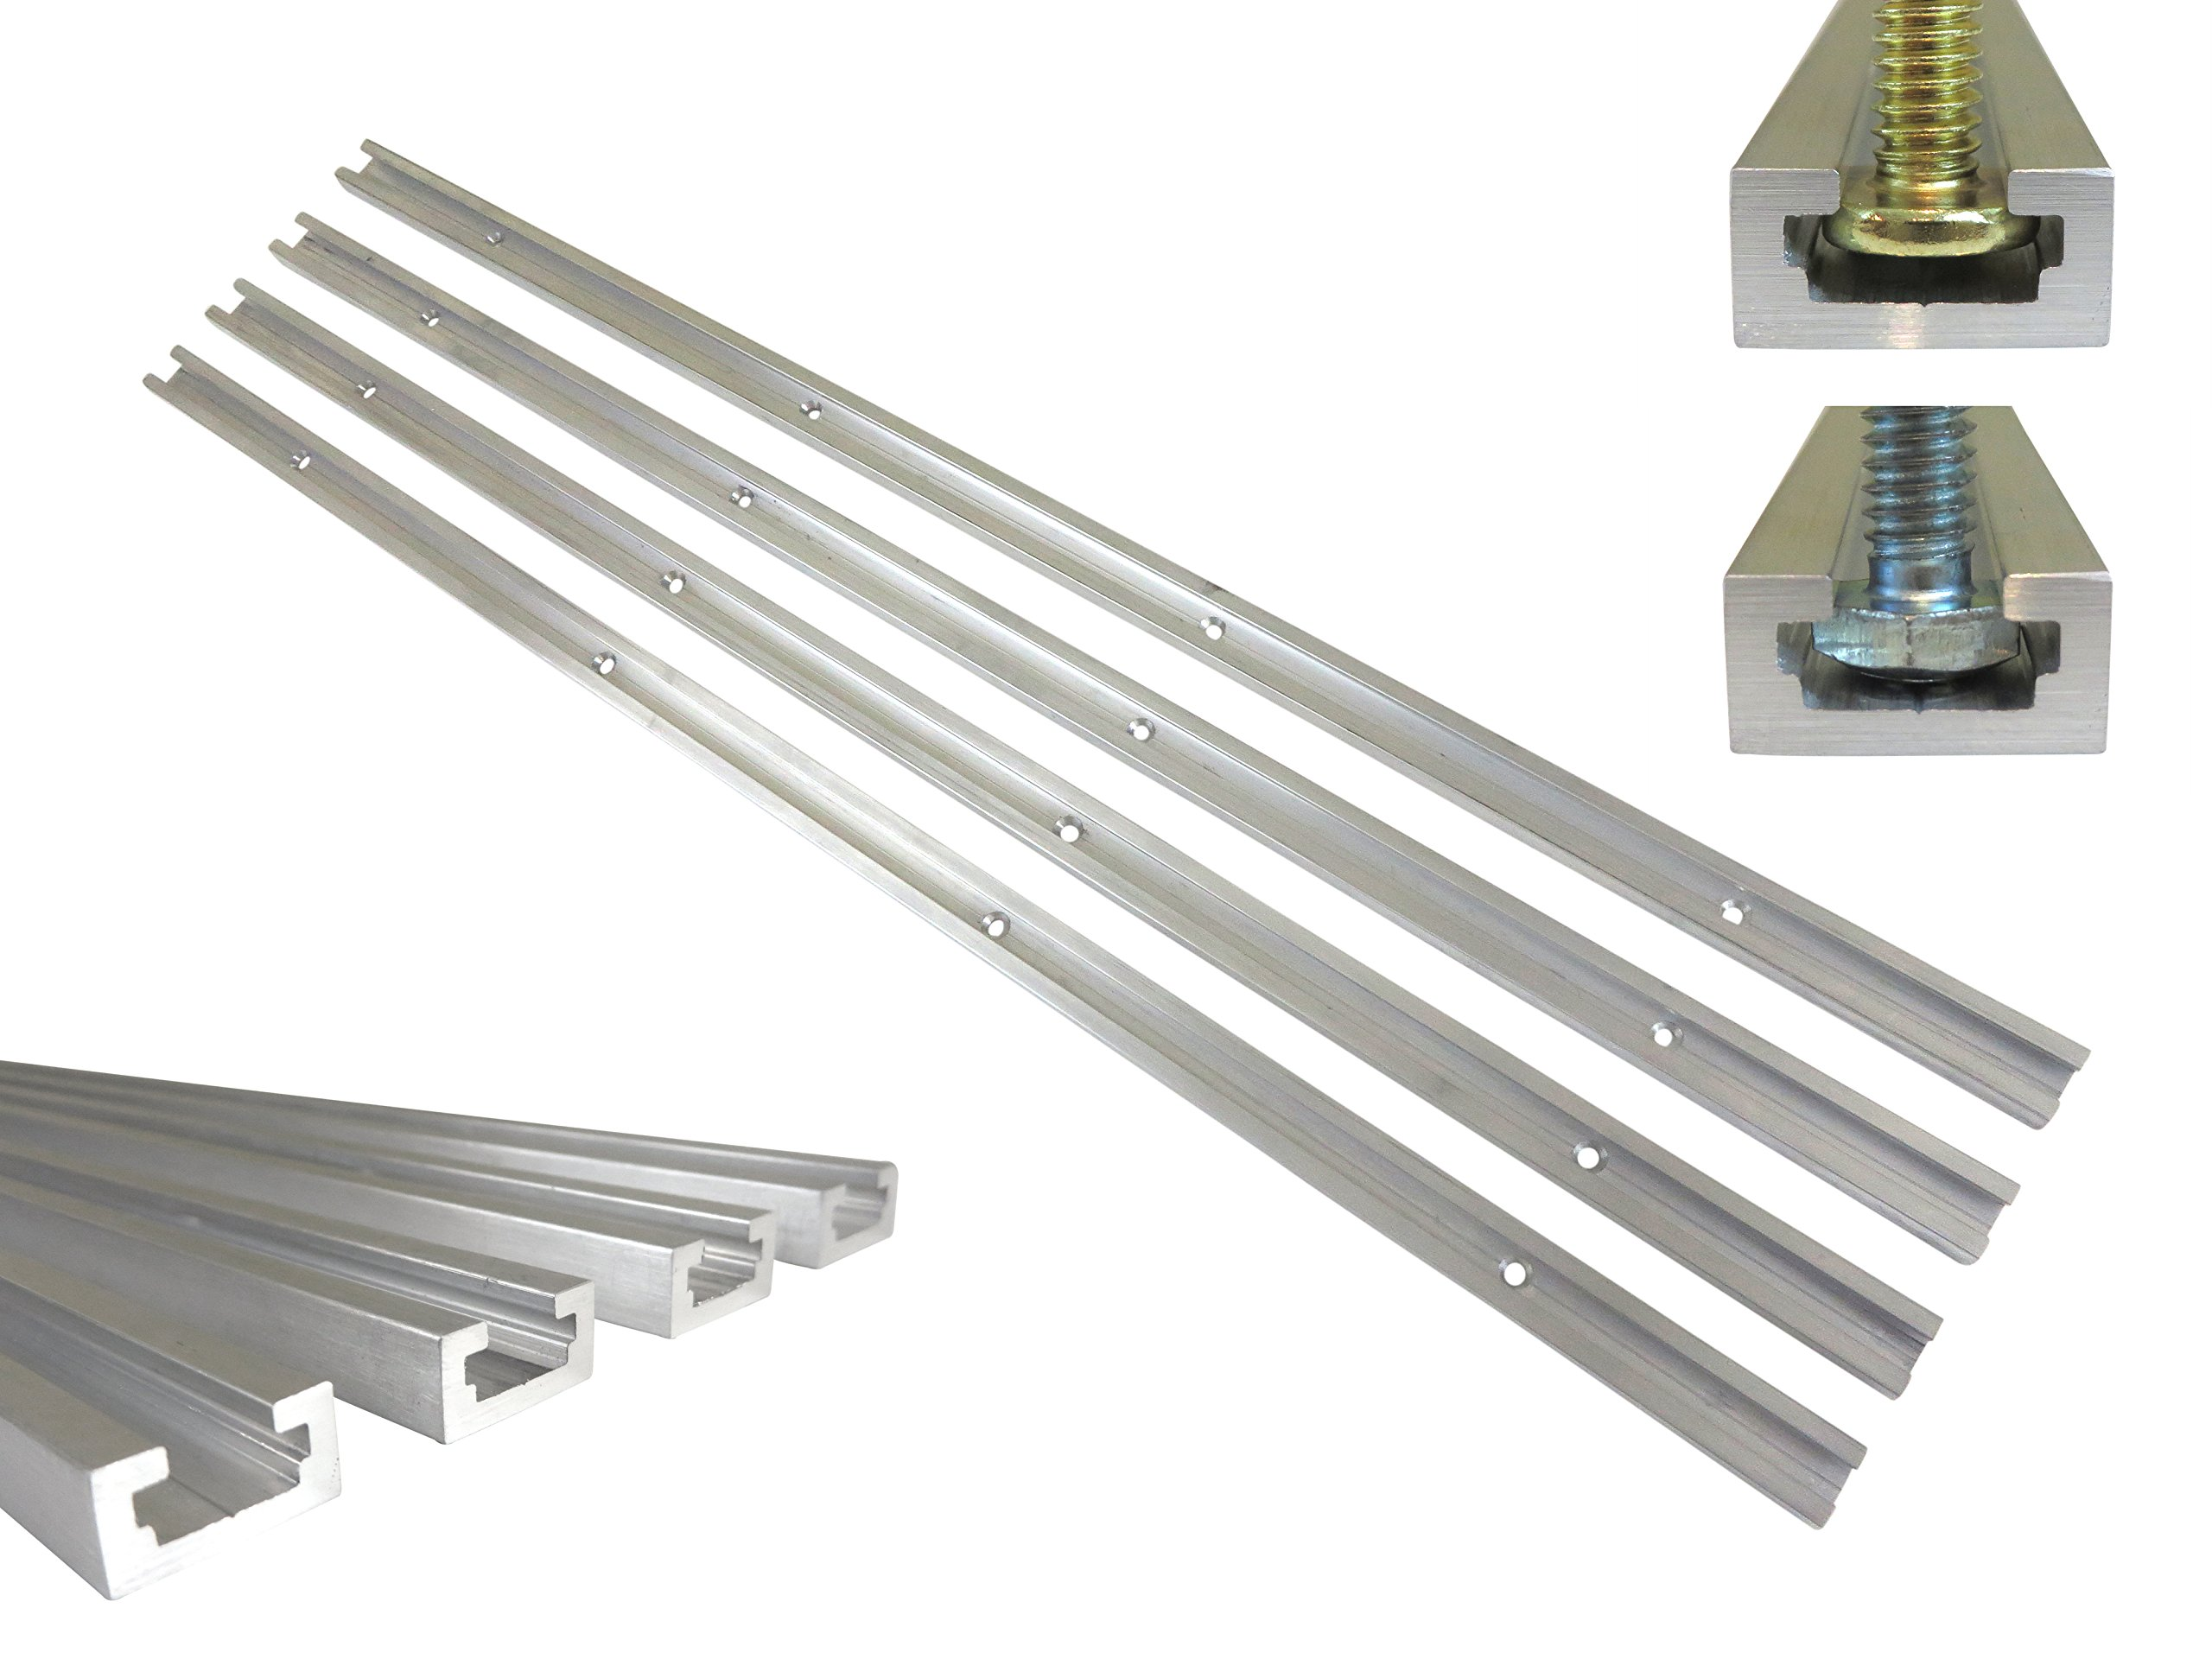 Lot 4 Each, 48'' Aluminum T Track 3/4'' by 3/8'' Slot, Accepts 1/4'' Hex Bolts, 1/4'' or 5/16'' T Bolts, Countersunk Holes Every 6'' 112134